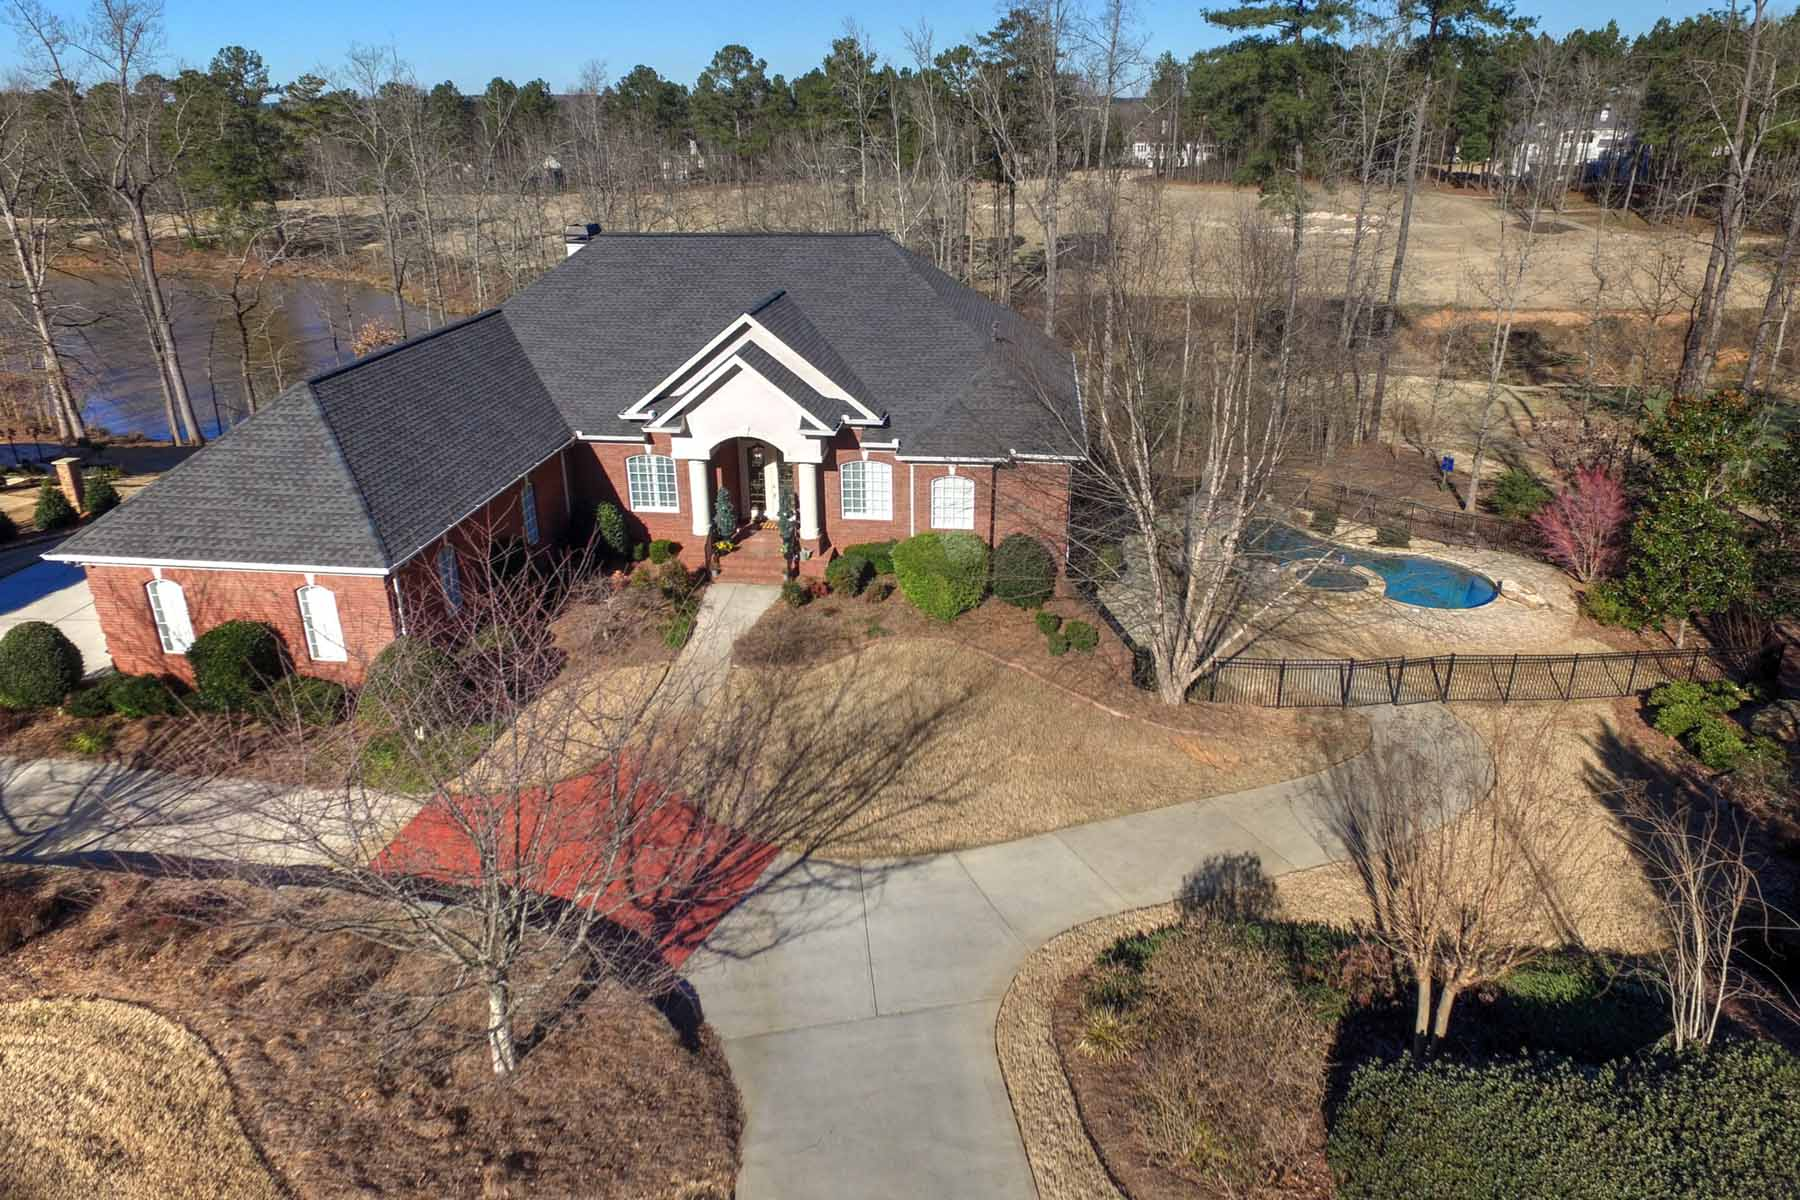 Maison unifamiliale pour l Vente à Enchanting home in Eagles Landing Country Club! 234 Eagles Landing Way McDonough, Georgia 30253 États-Unis